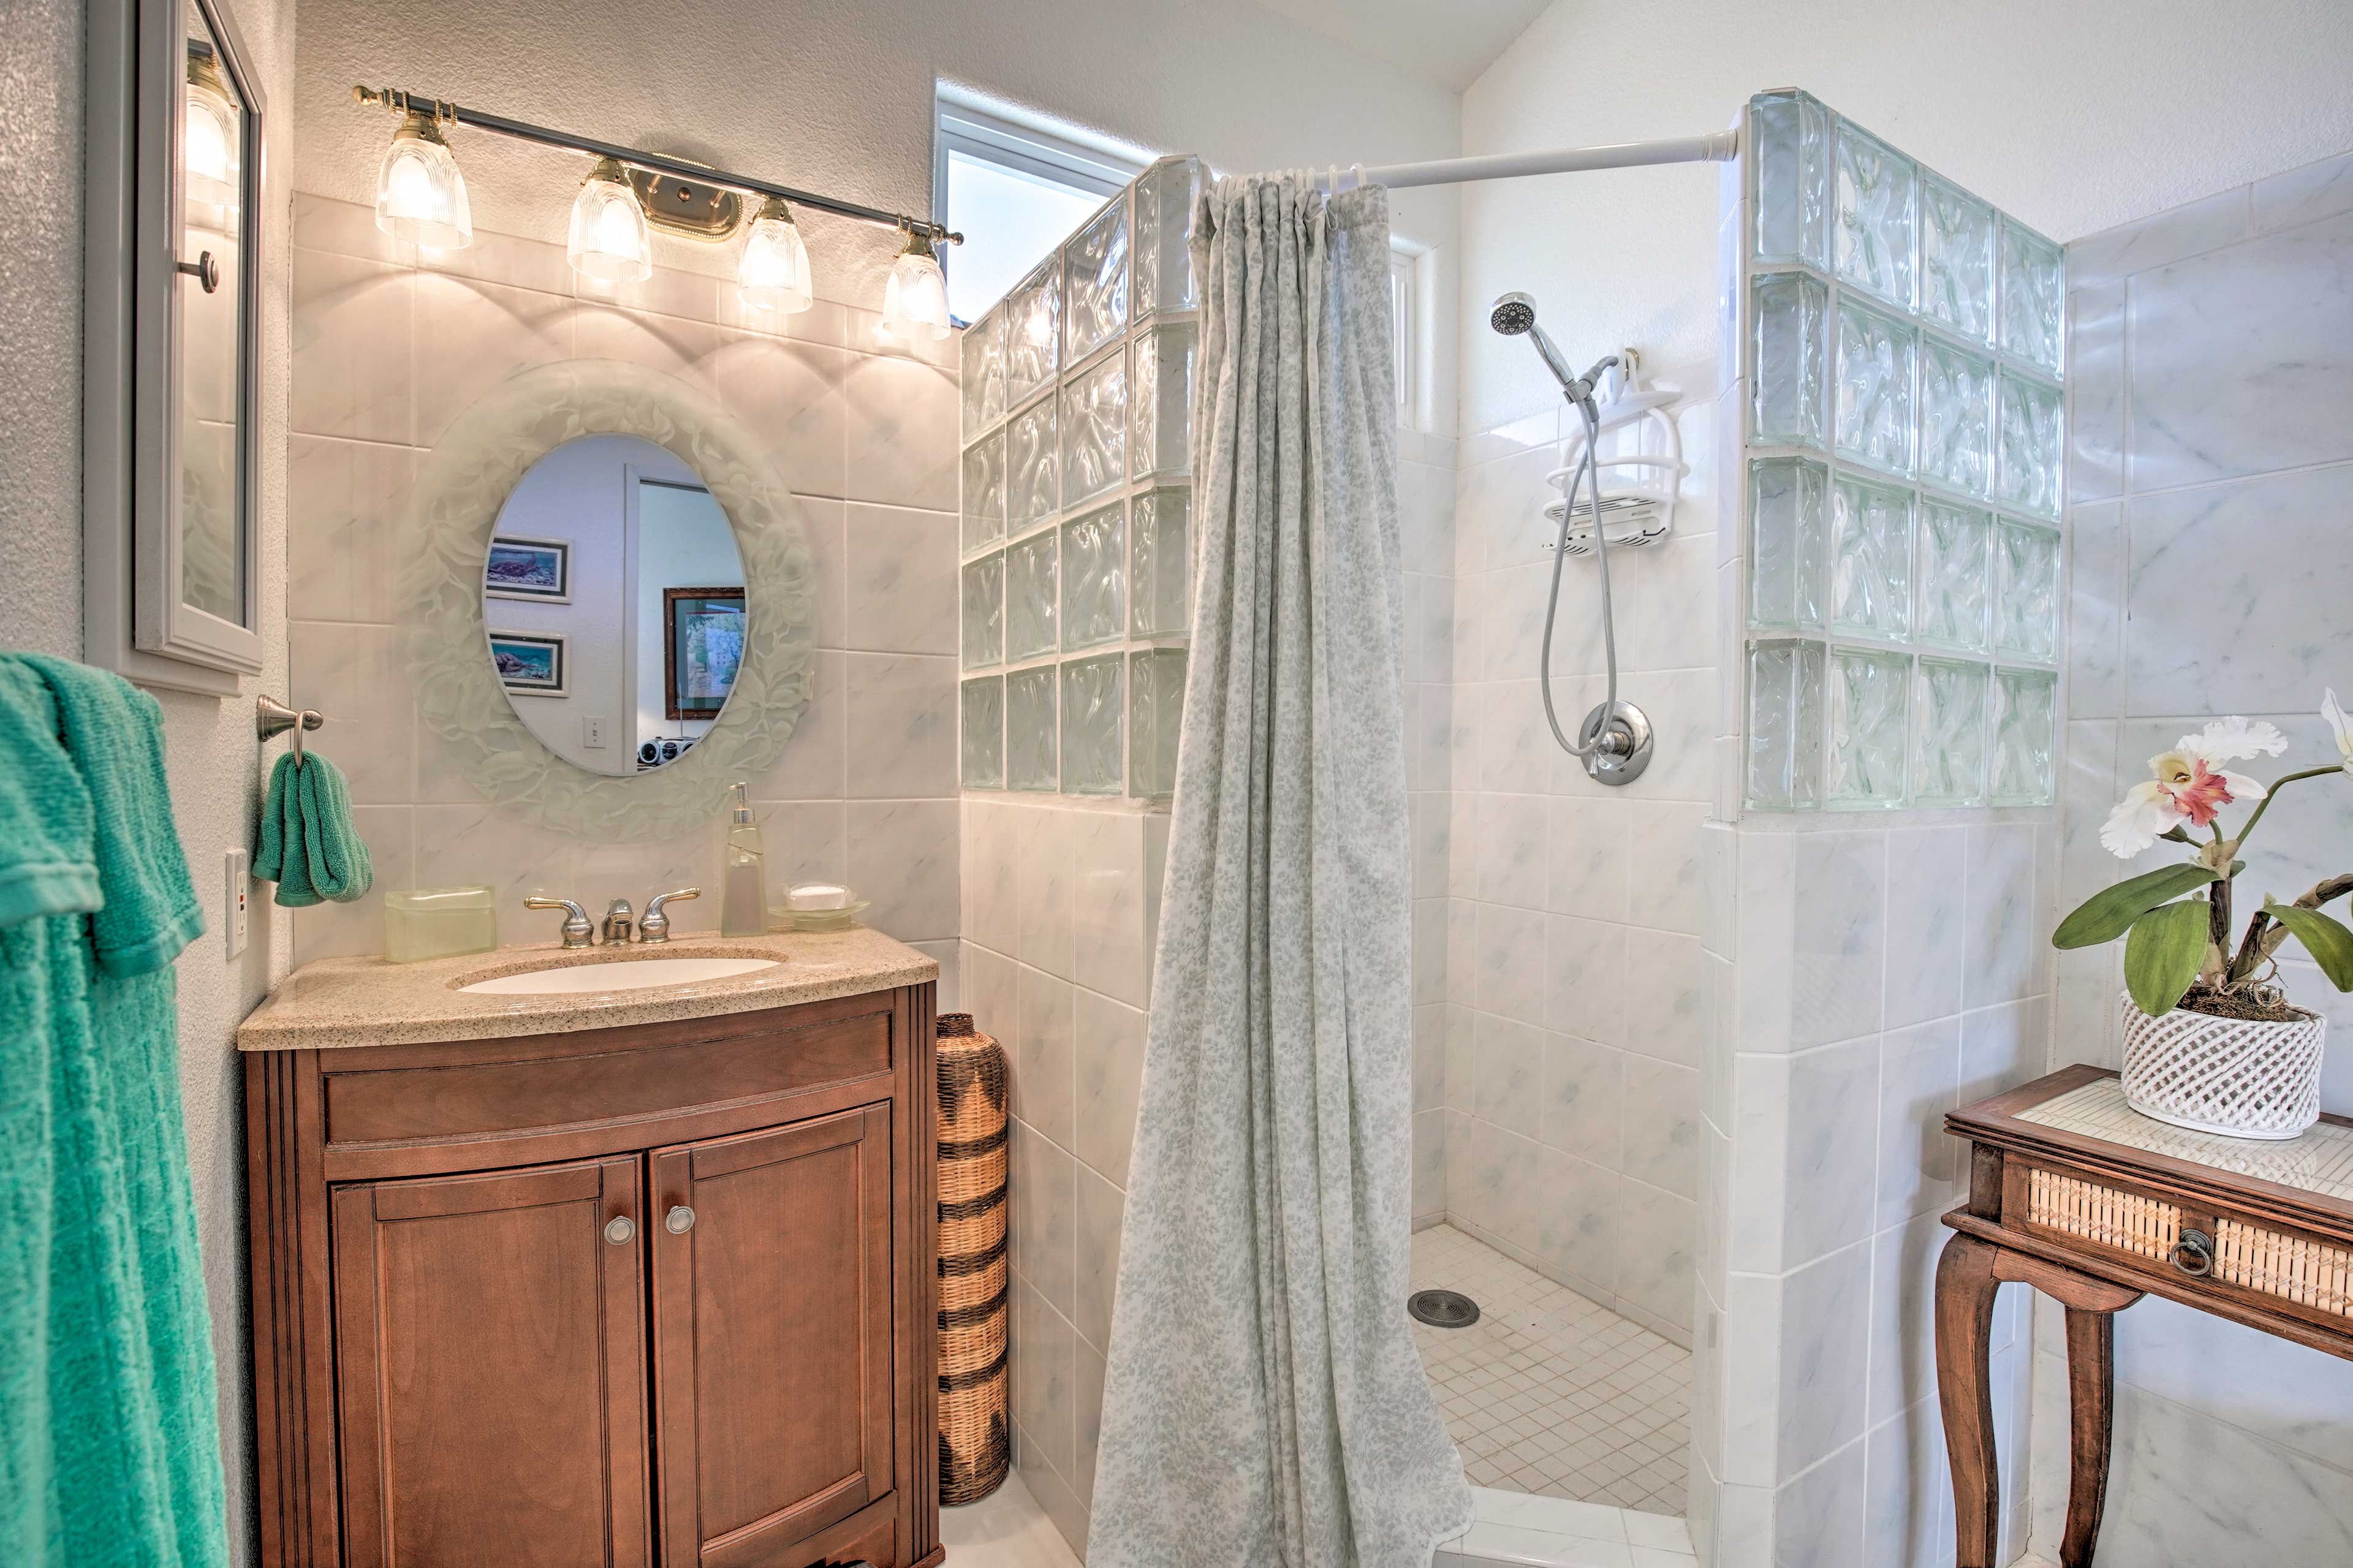 This bathroom also hosts an accessible walk-in shower.